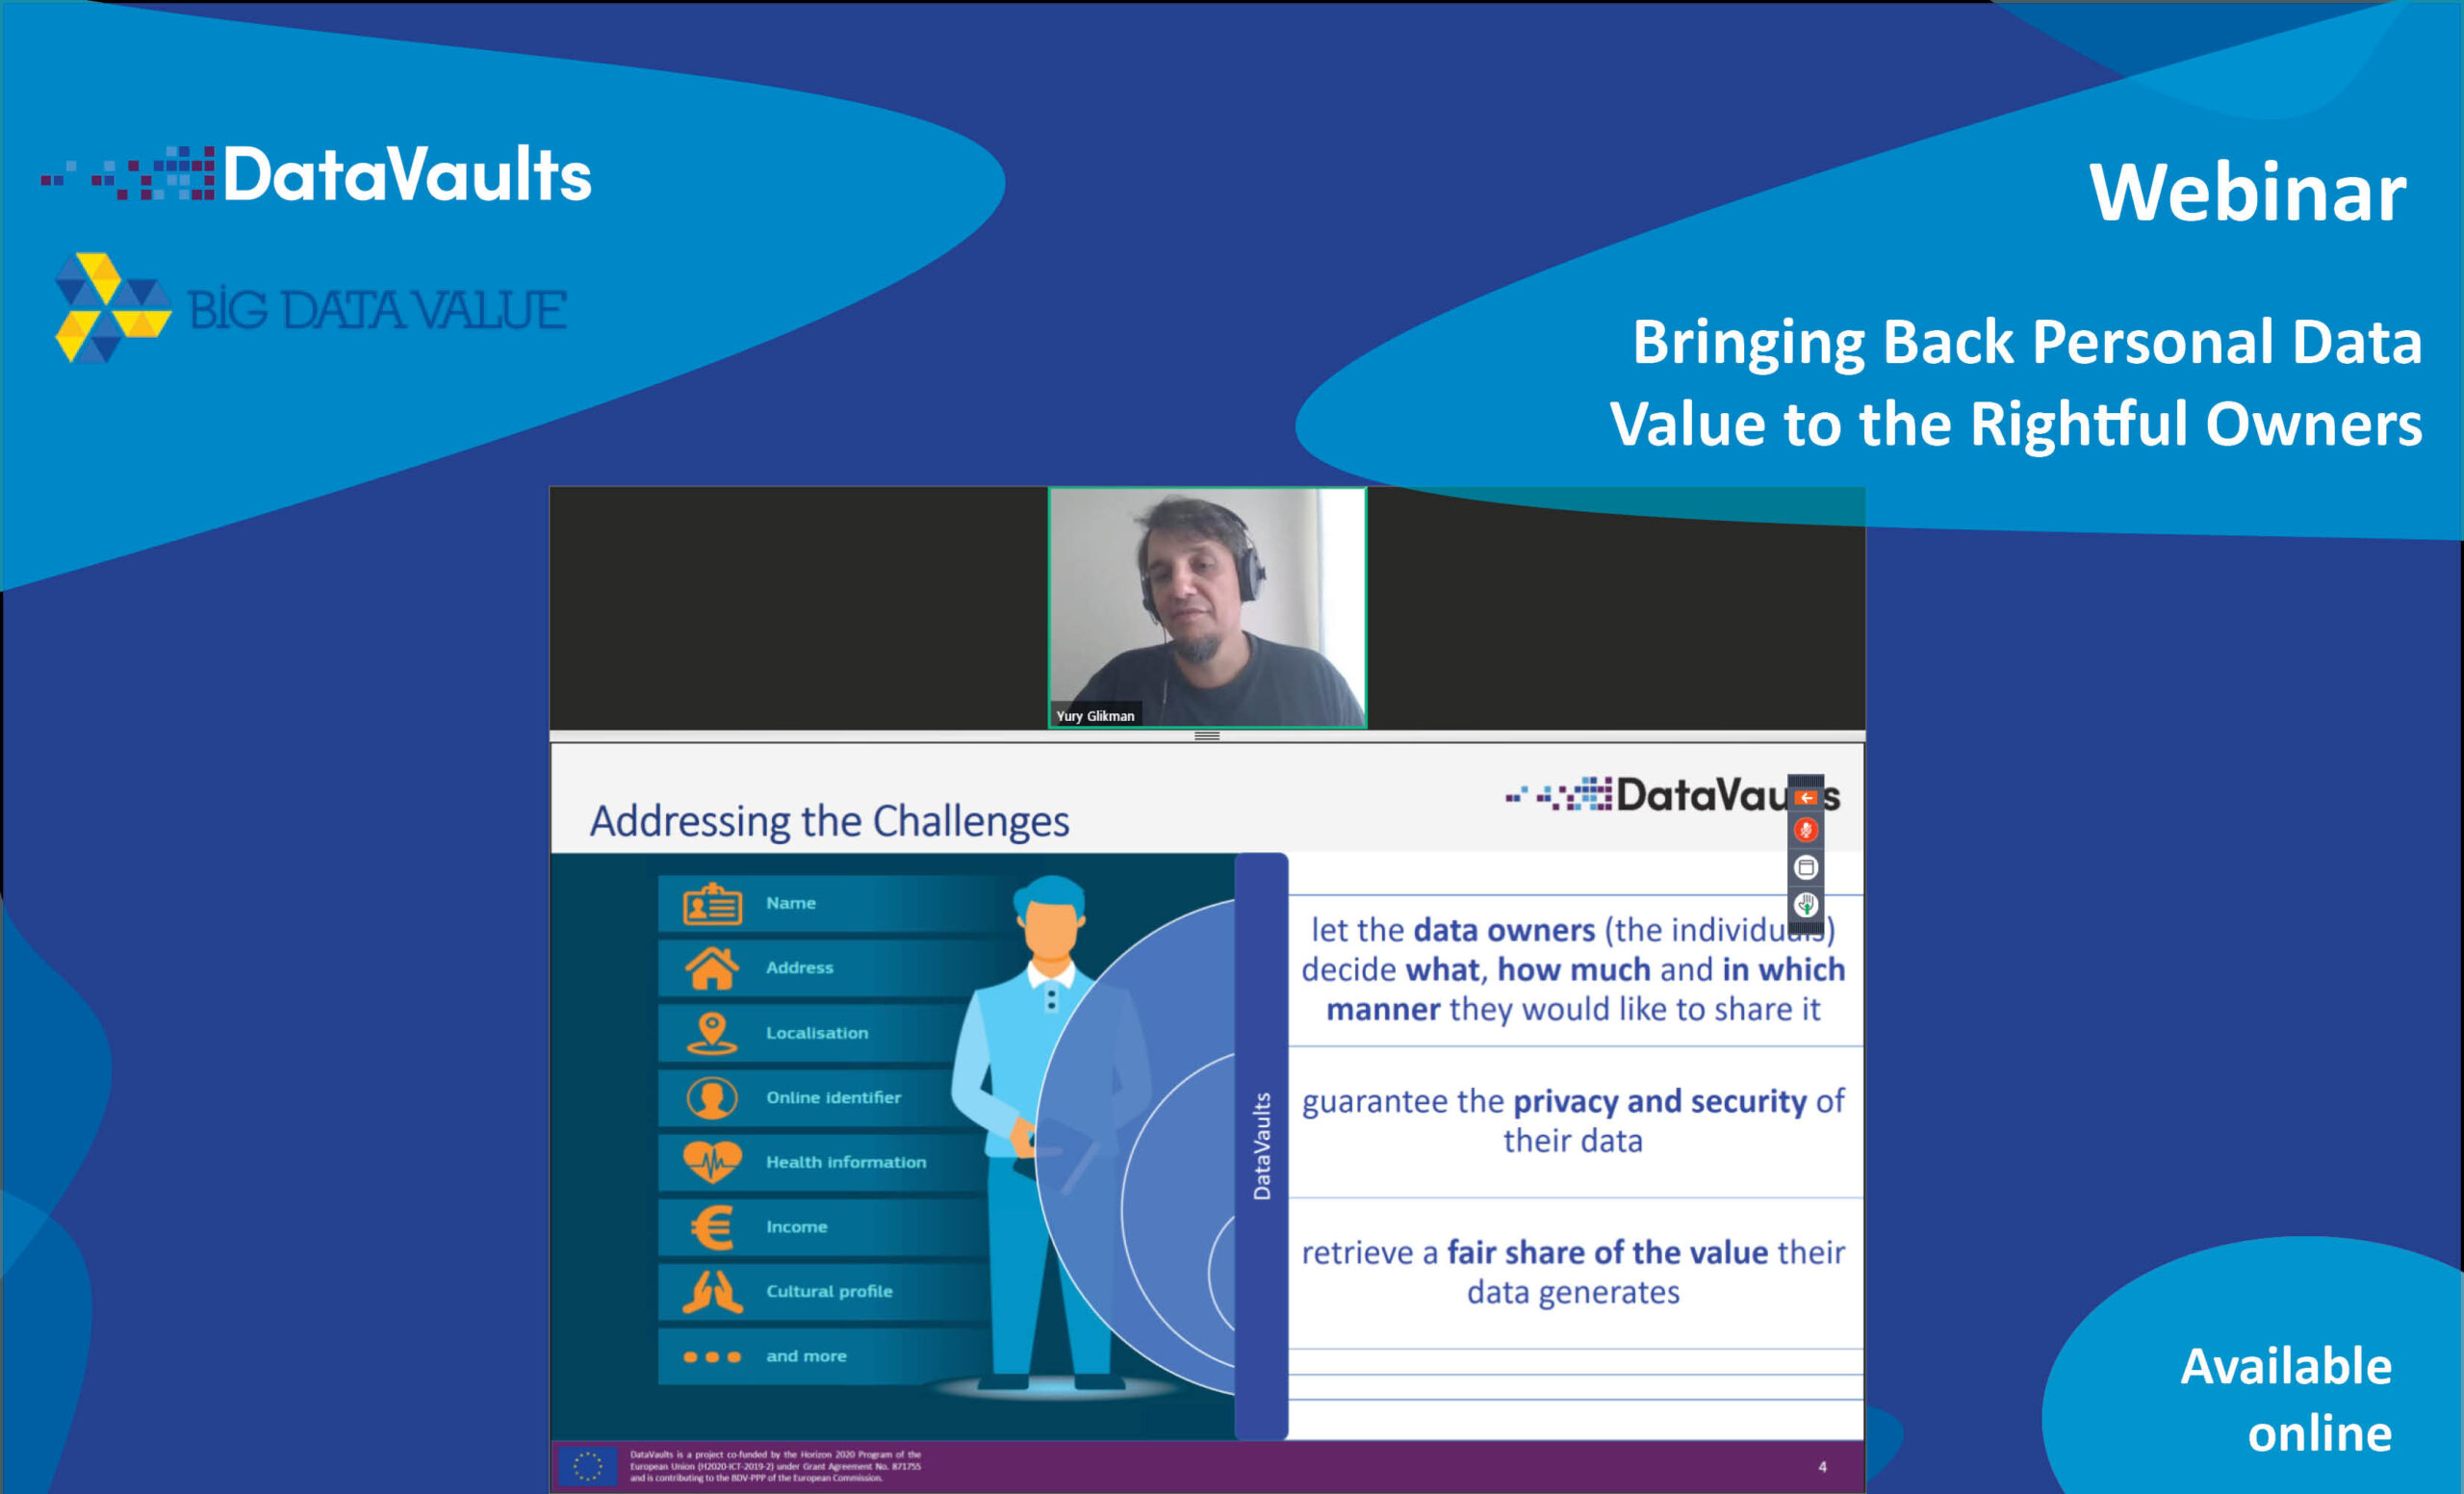 datavaults webinar @bdve available online